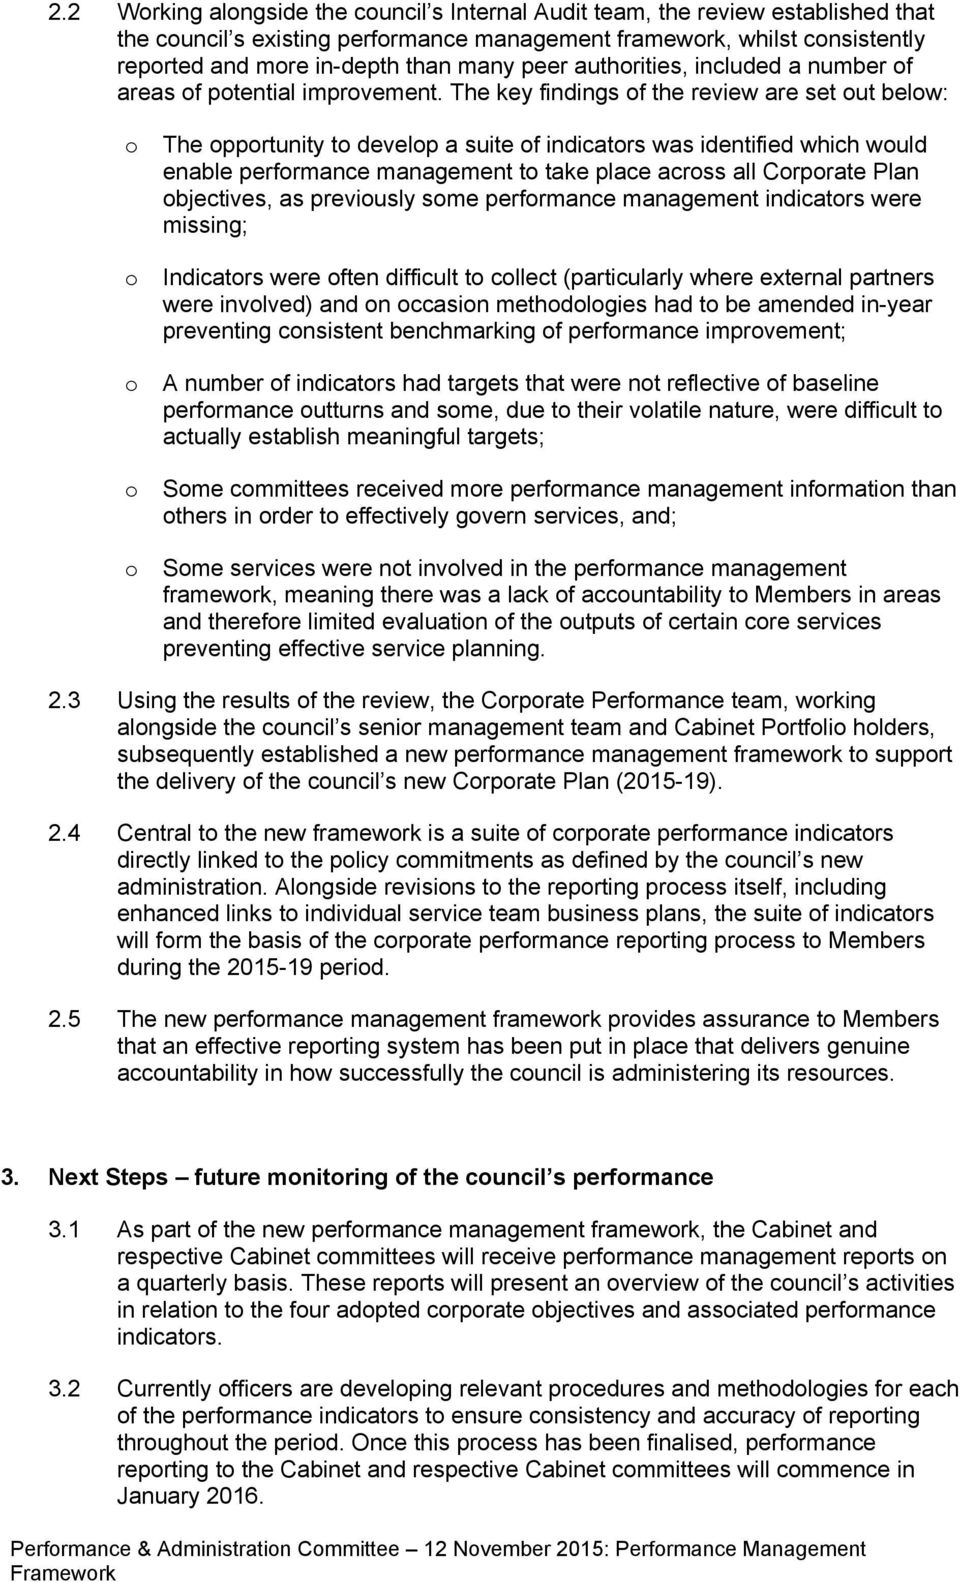 The key findings f the review are set ut belw: The pprtunity t develp a suite f indicatrs was identified which wuld enable perfrmance management t take place acrss all Crprate Plan bjectives, as